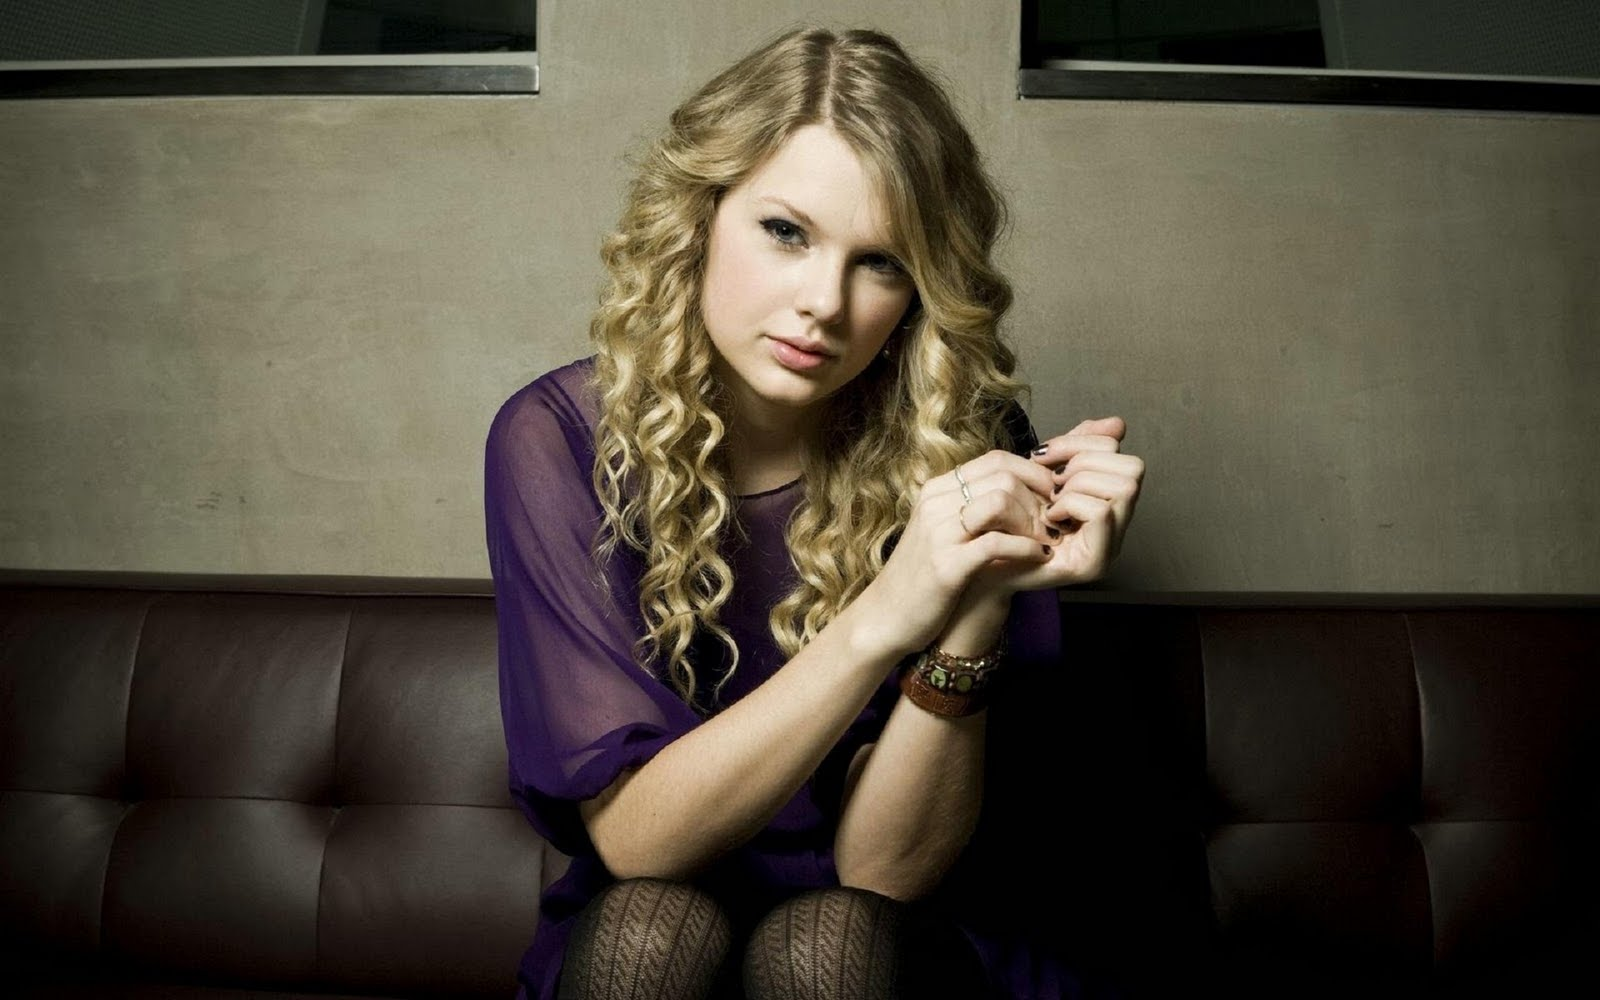 http://1.bp.blogspot.com/-4ajS8wFPj8M/Tmp5H1UV57I/AAAAAAAAG0s/NCdJbHdCnBw/s1600/The-best-top-desktop-taylor-swift-wallpapers-taylor-swift-wallpaper-taylor-swift-background-hd-18.jpg